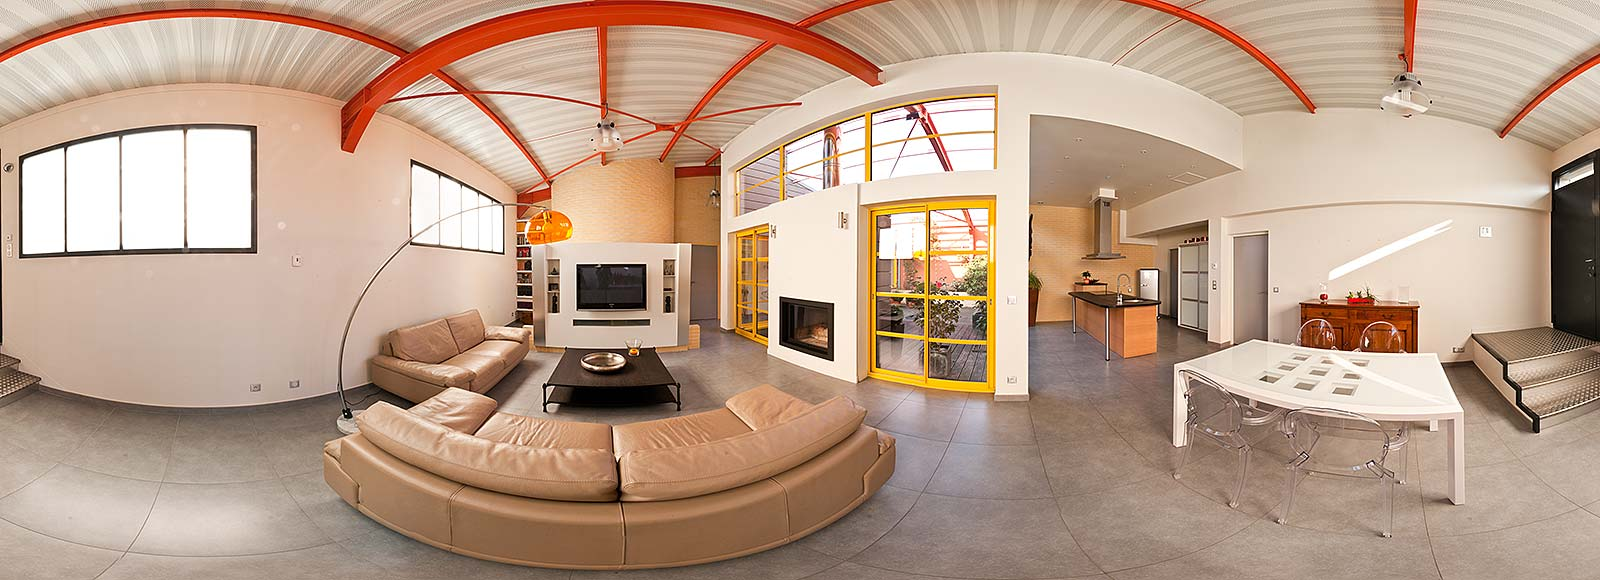 Photo 360 interactive pour l immobilier de prestige for Le loft immobilier